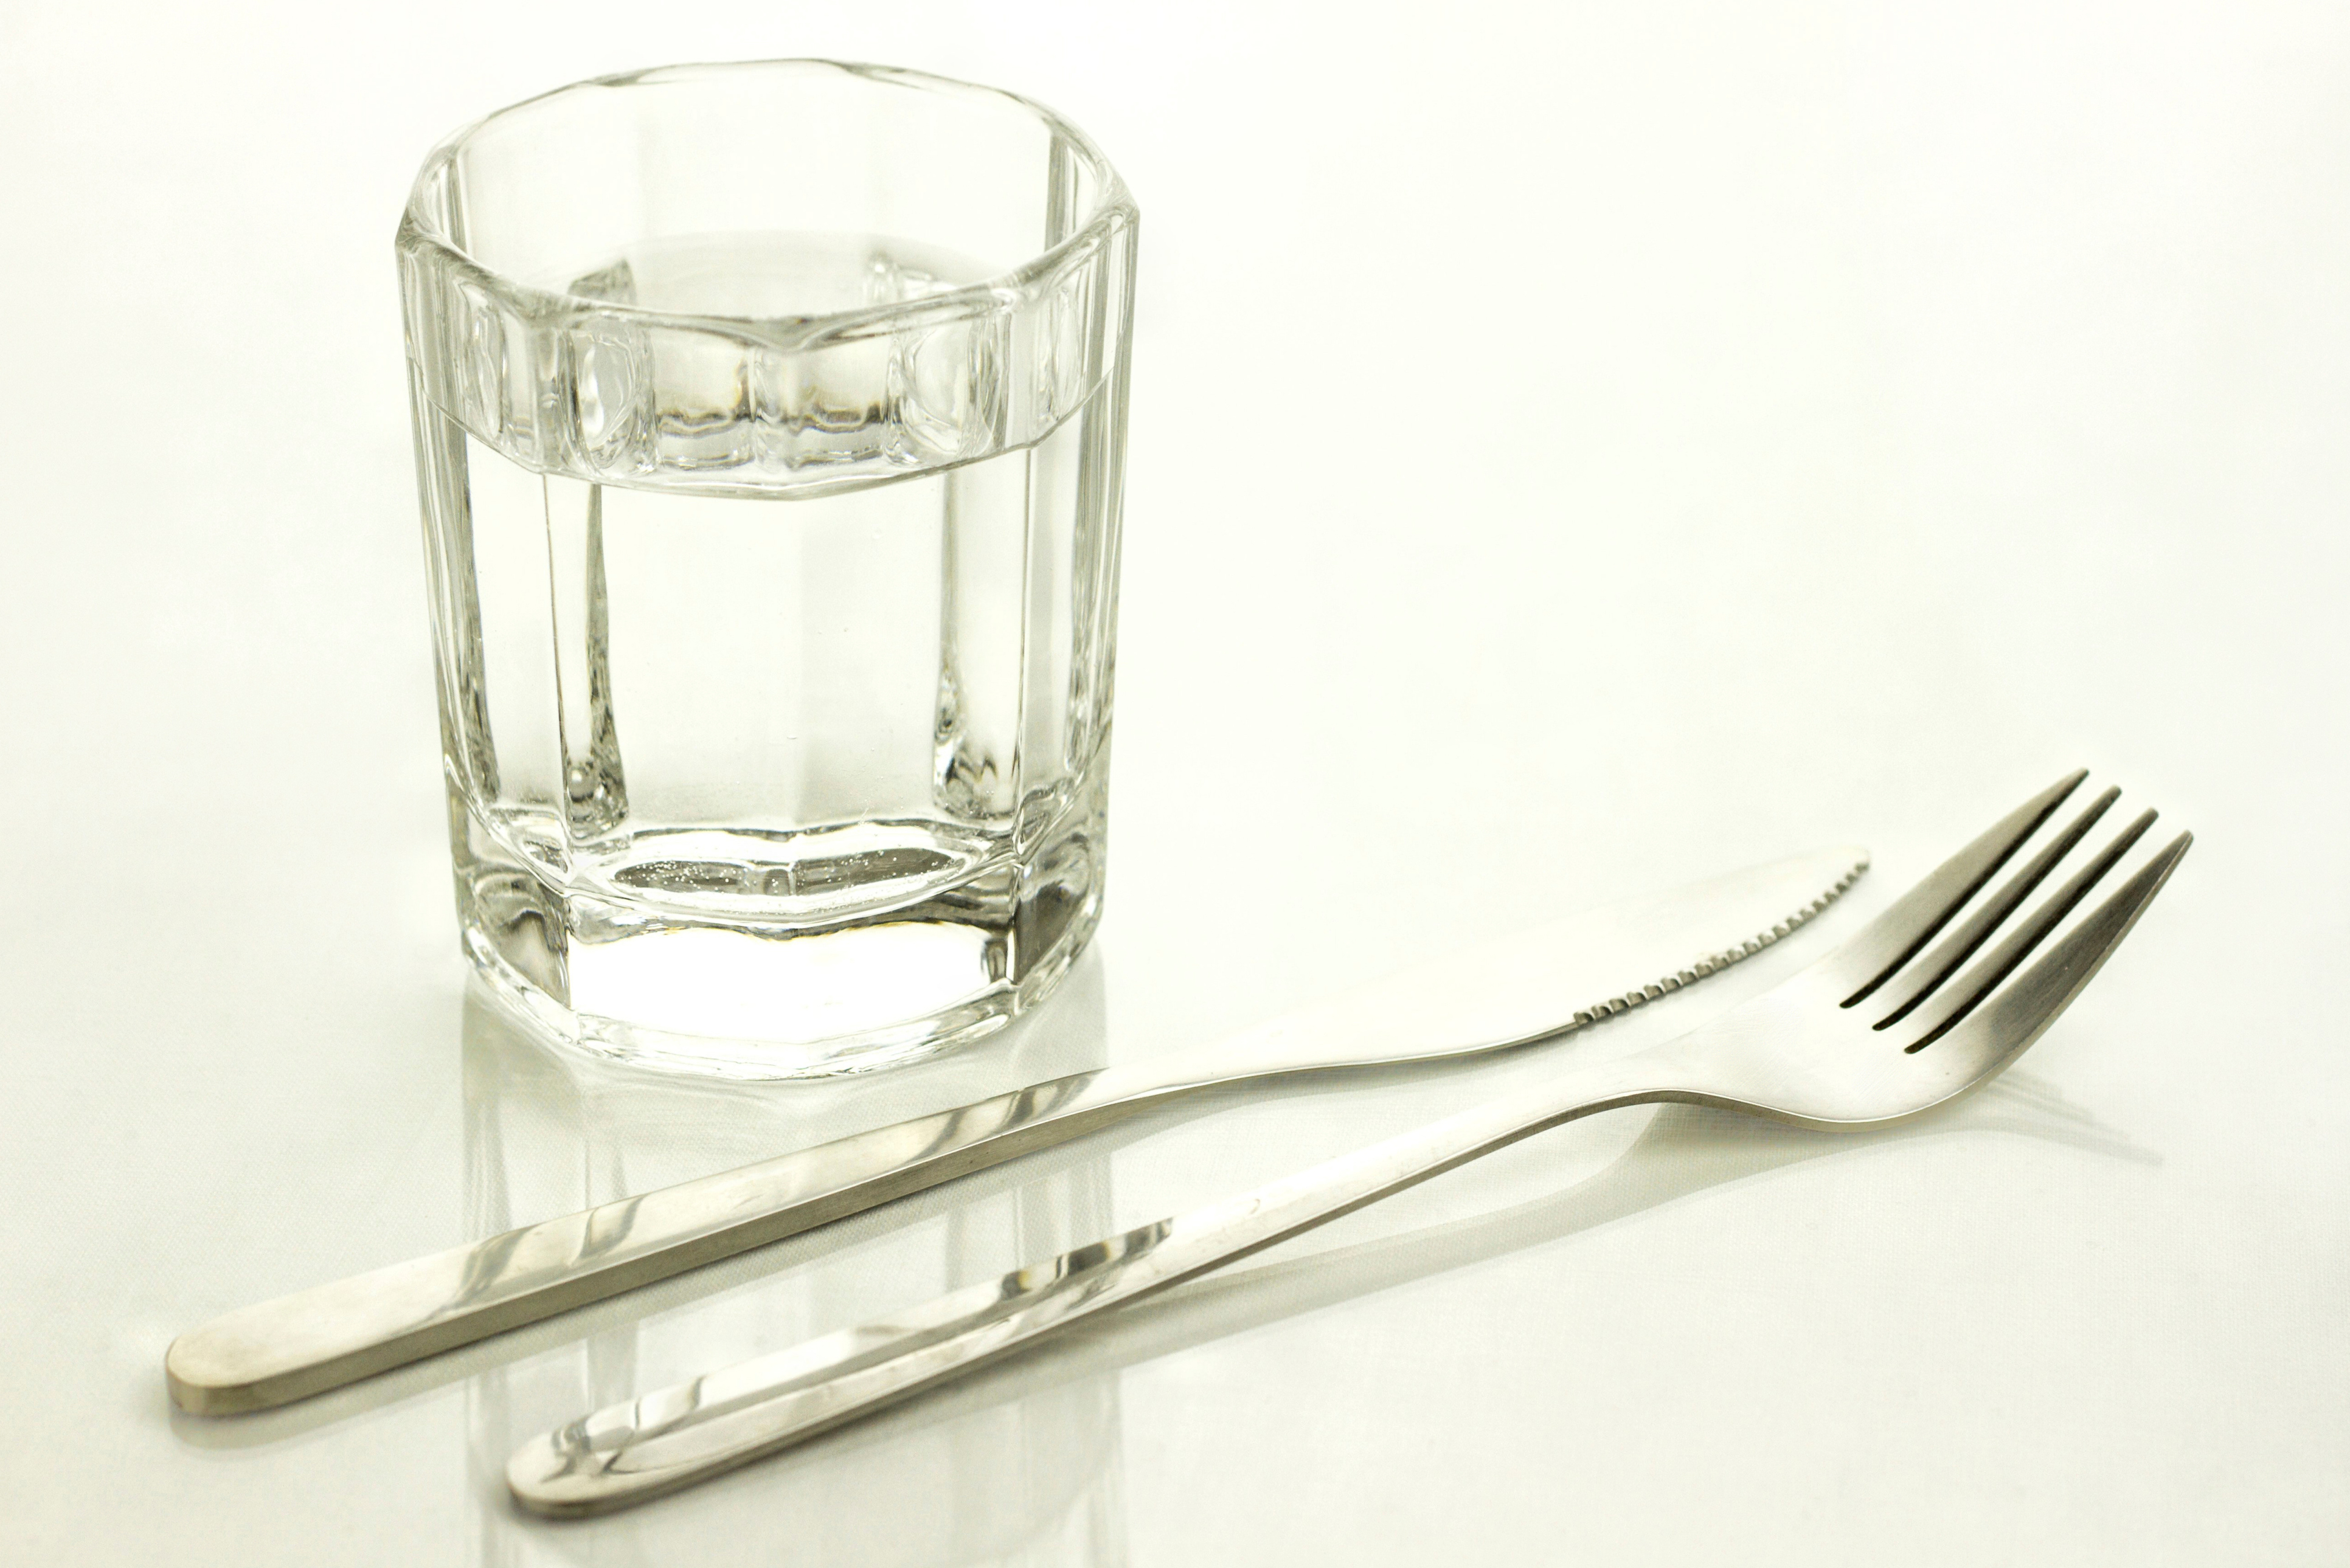 Fasting for stronger immunity and less illness